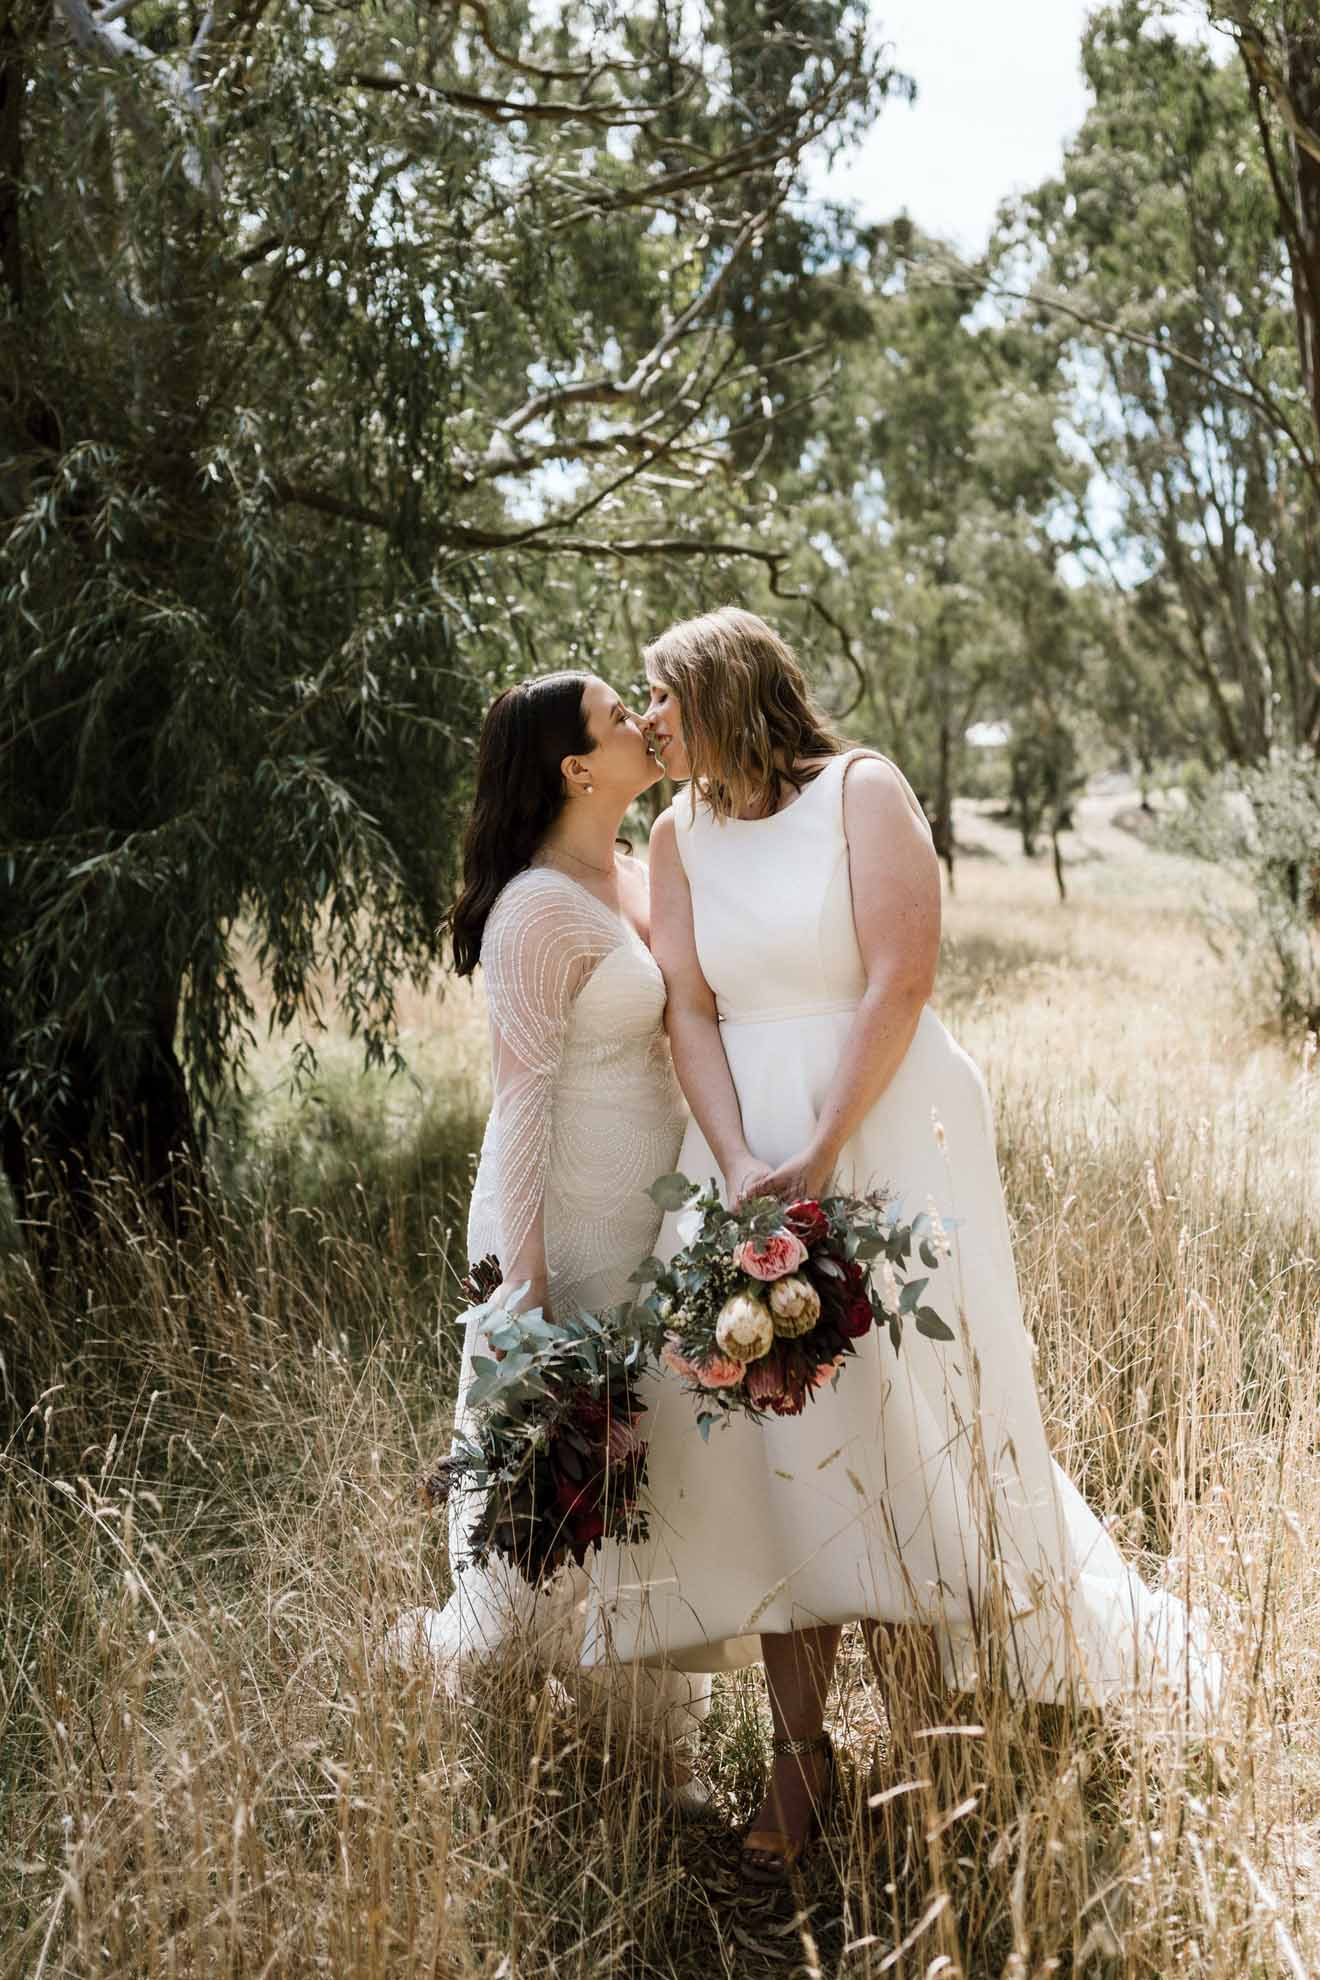 Gold & Grit photography lesbian gay lgbtq+ Melbourne Victoria wedding Dancing With Her magazine Australia (1)